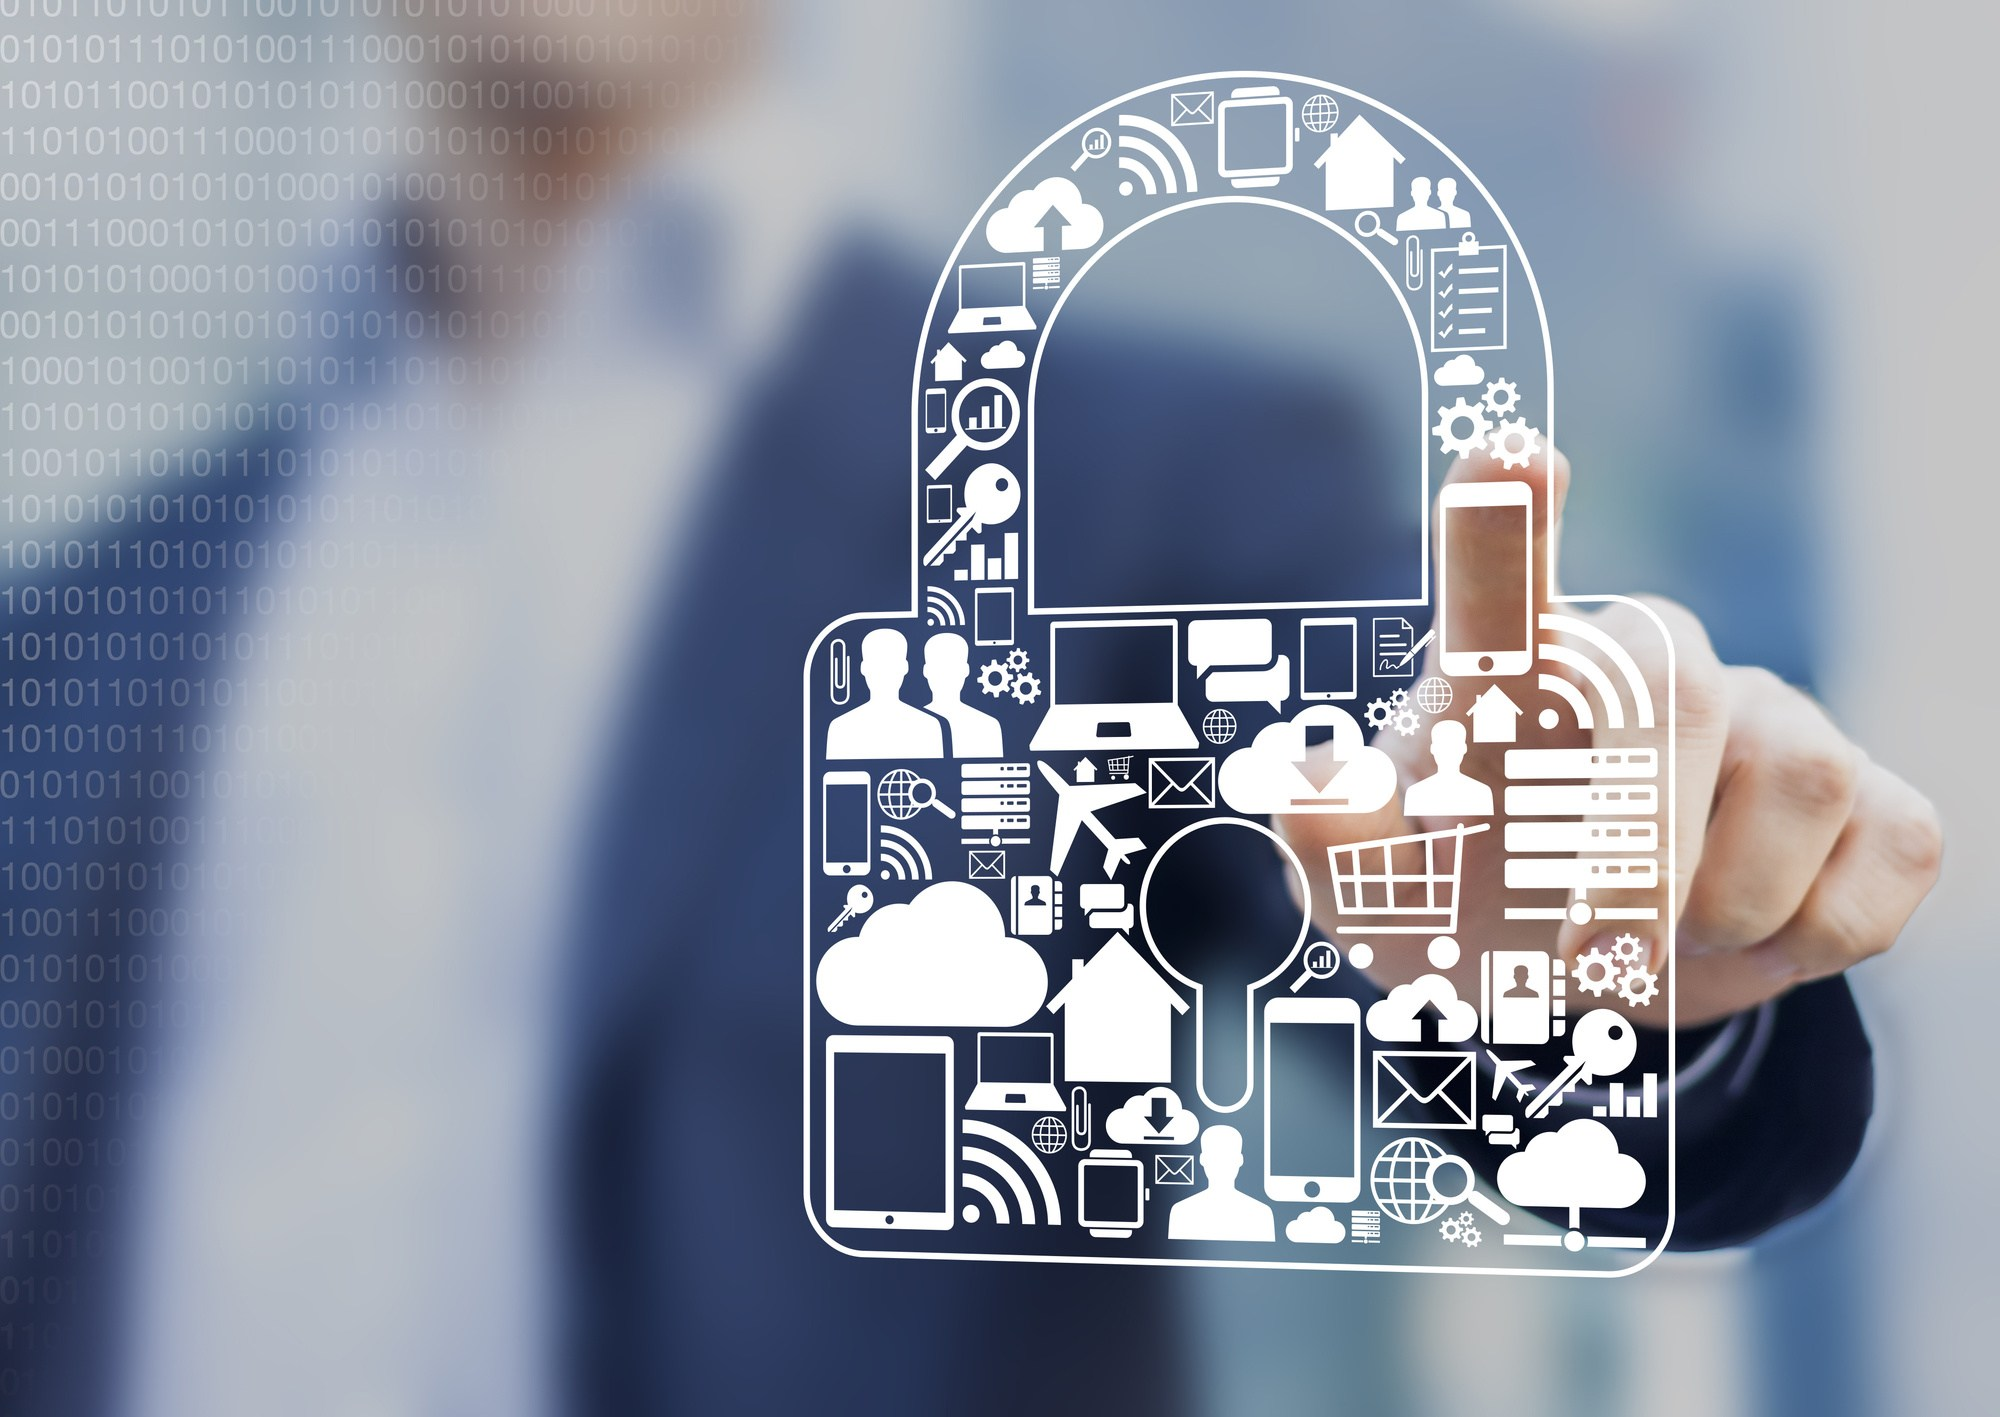 5 Cyber Security Problems Businesses Have and How to Fix Them